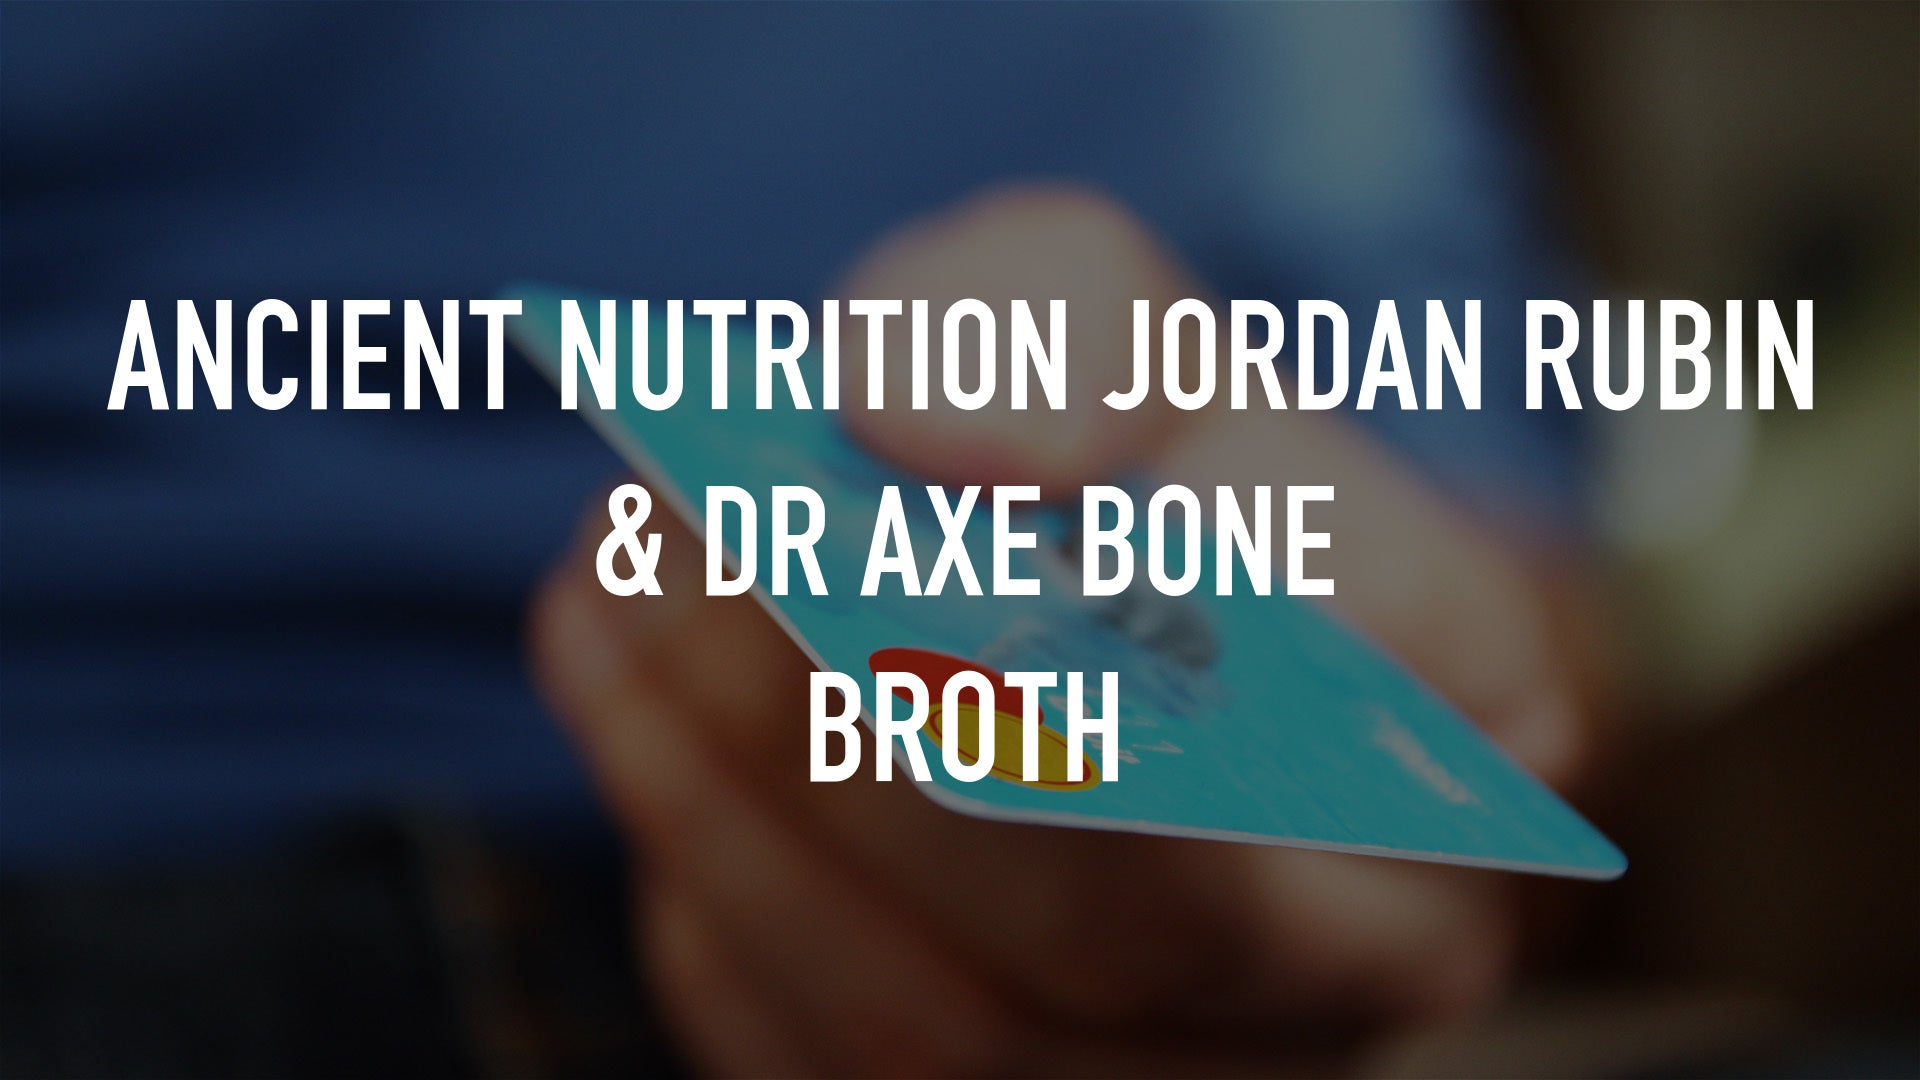 Ancient Nutrition Jordan Rubin & Dr Axe Bone Broth